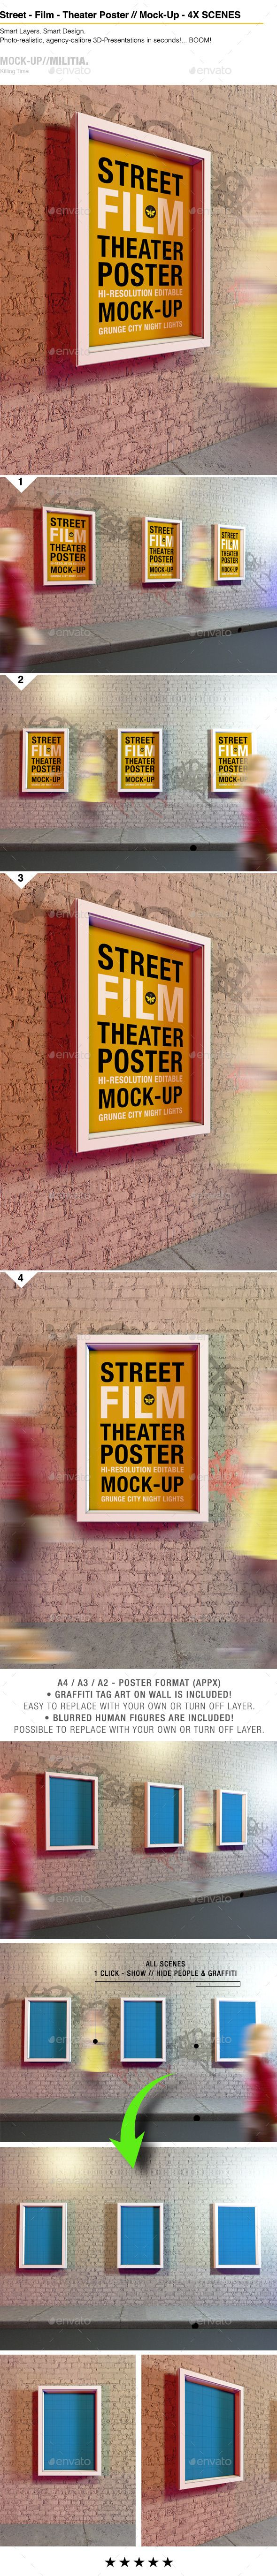 Theatre Theater Film Outdoor Poster Mock Up Poster Mockup Theatre Poster Film